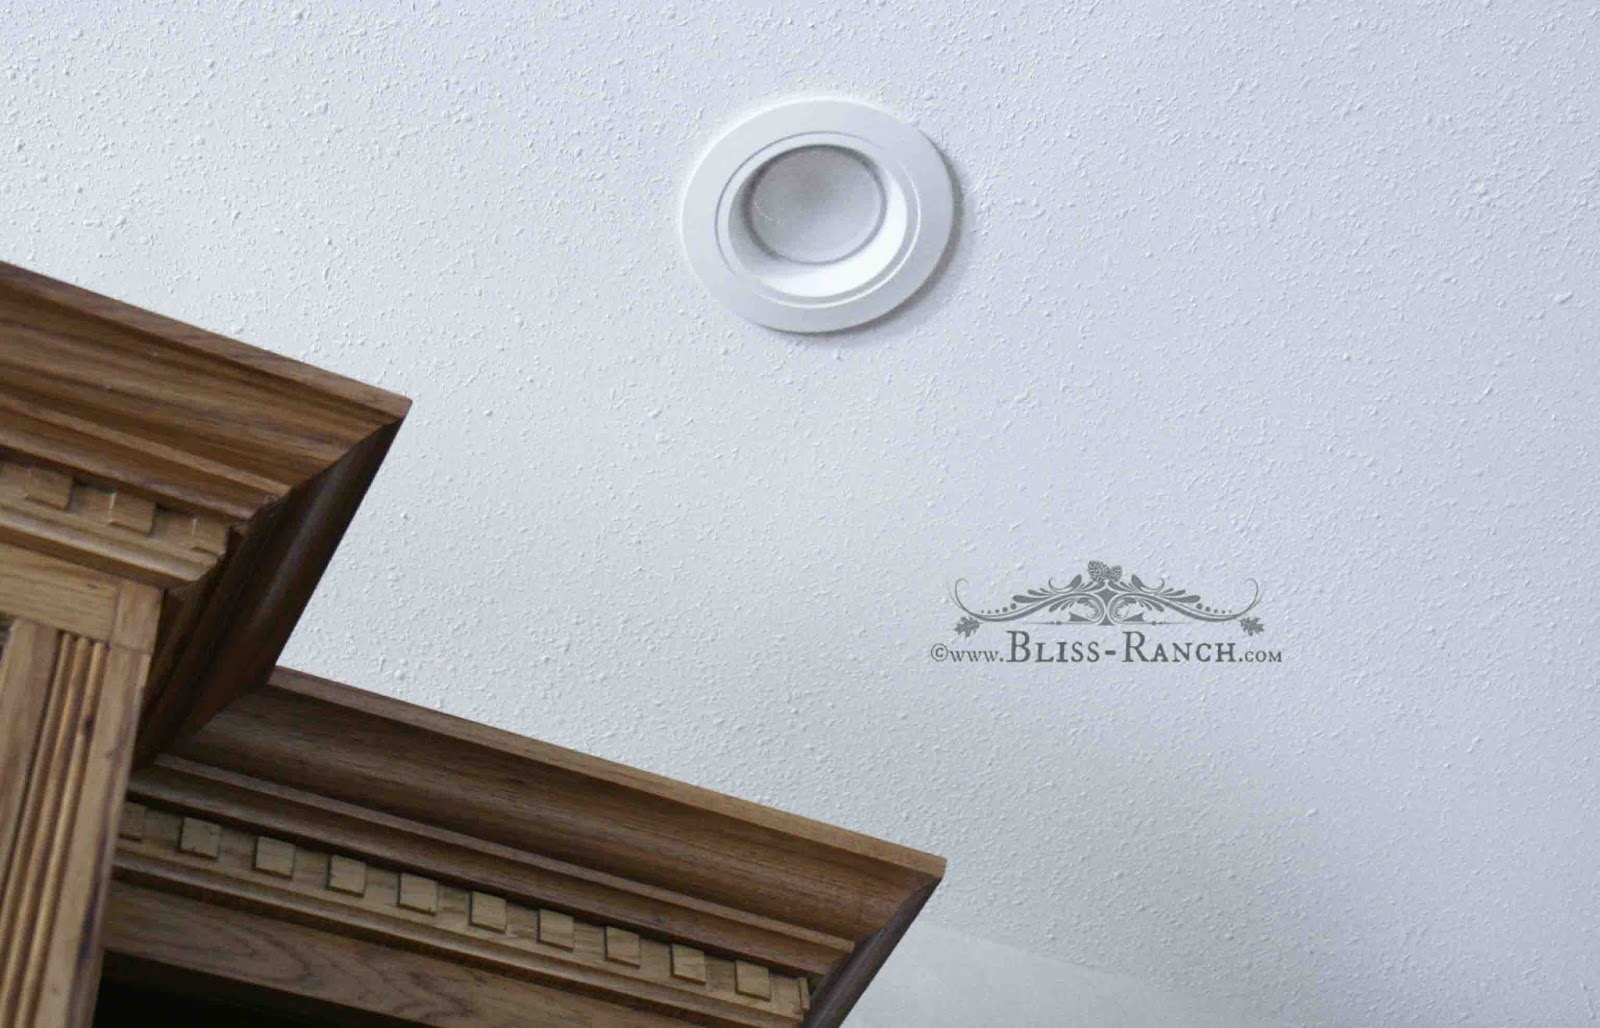 Bliss Ranch: LED Retrofit Kitchen Lights